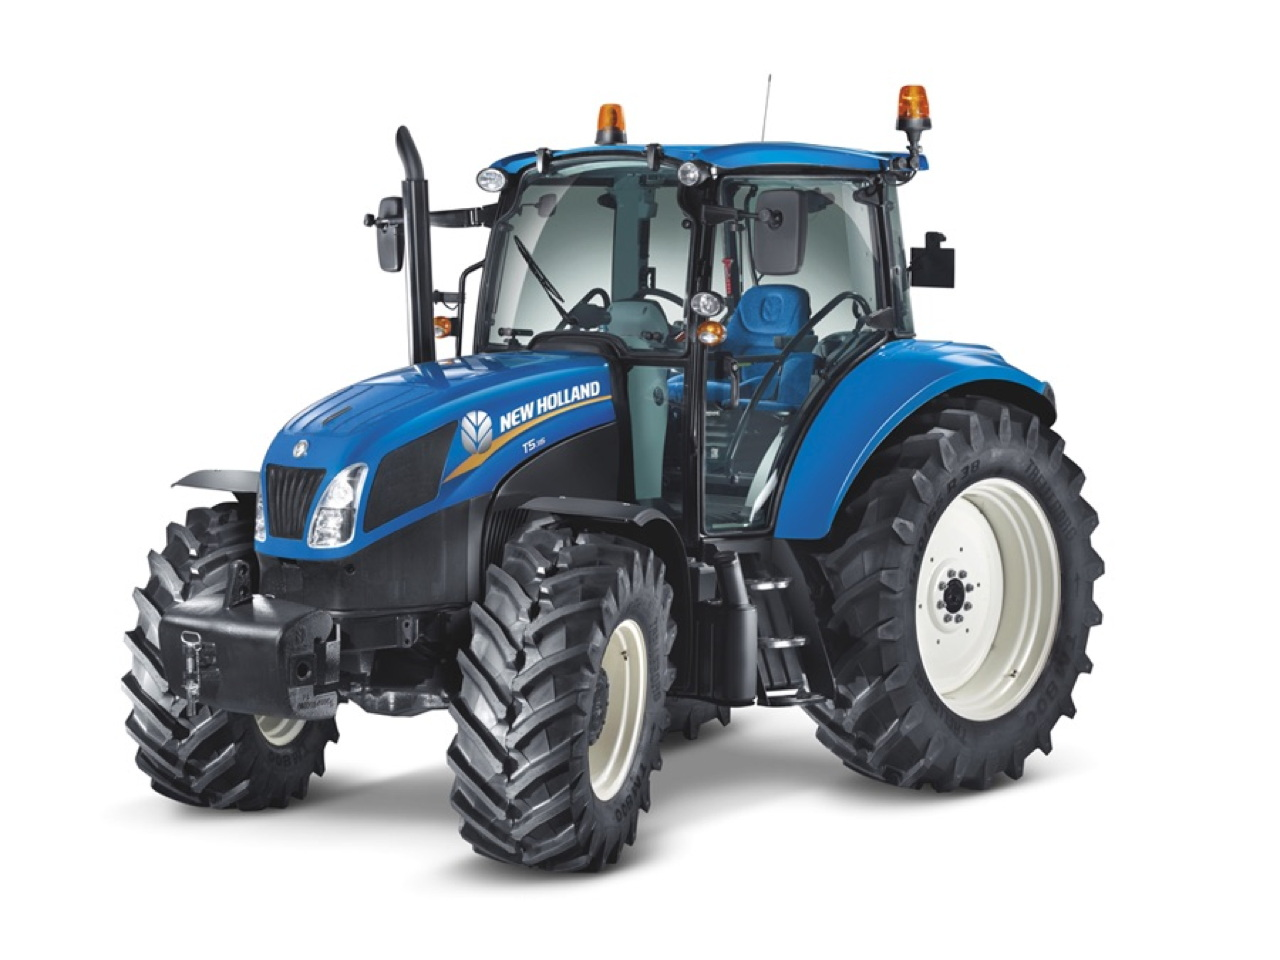 New Holland T5 Utility T5.75 Utility